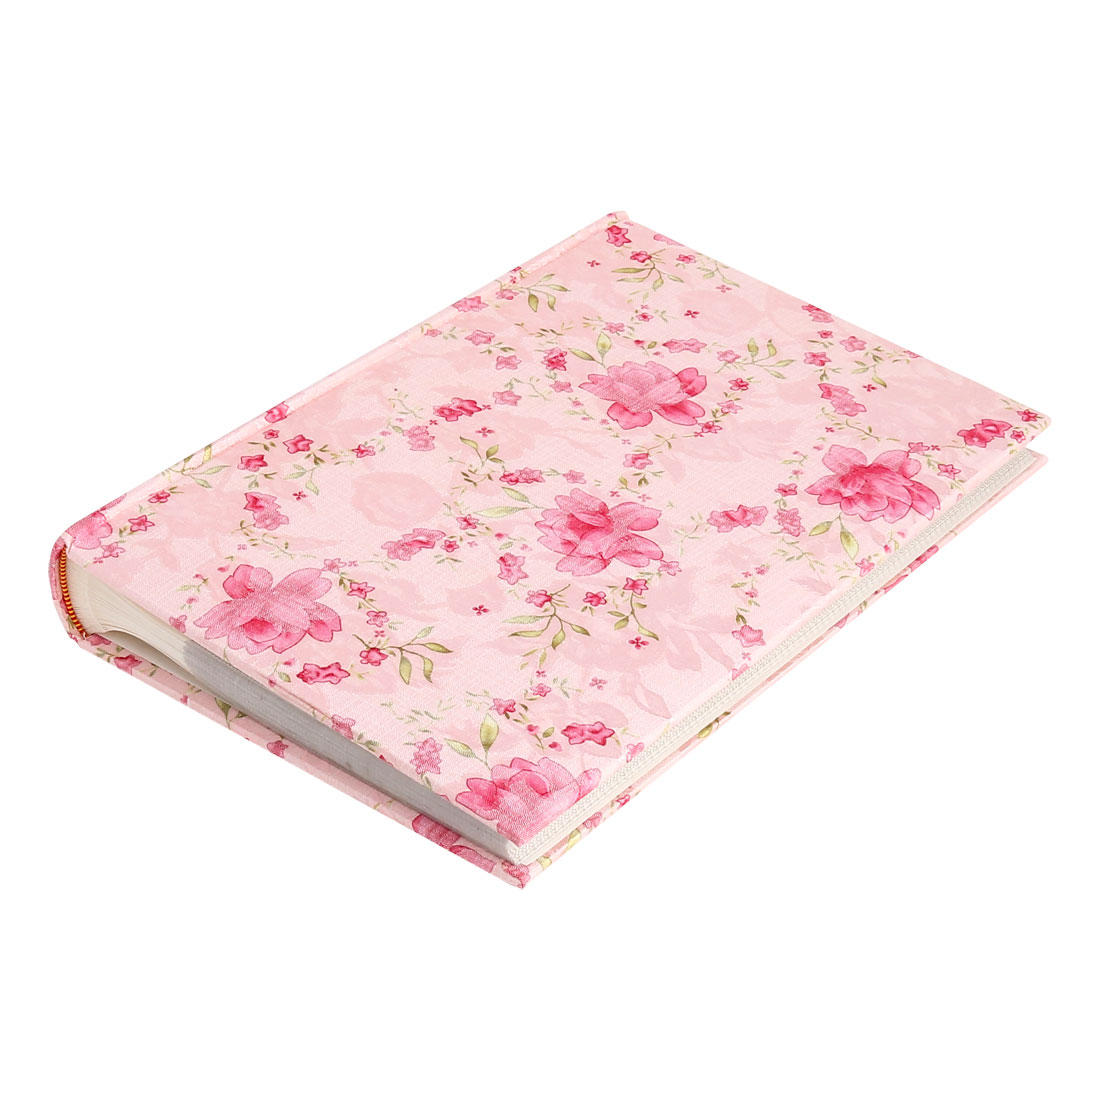 Household Non-Woven Fabric Surface Paper Memo Pocket Photo Album Pink 6inches